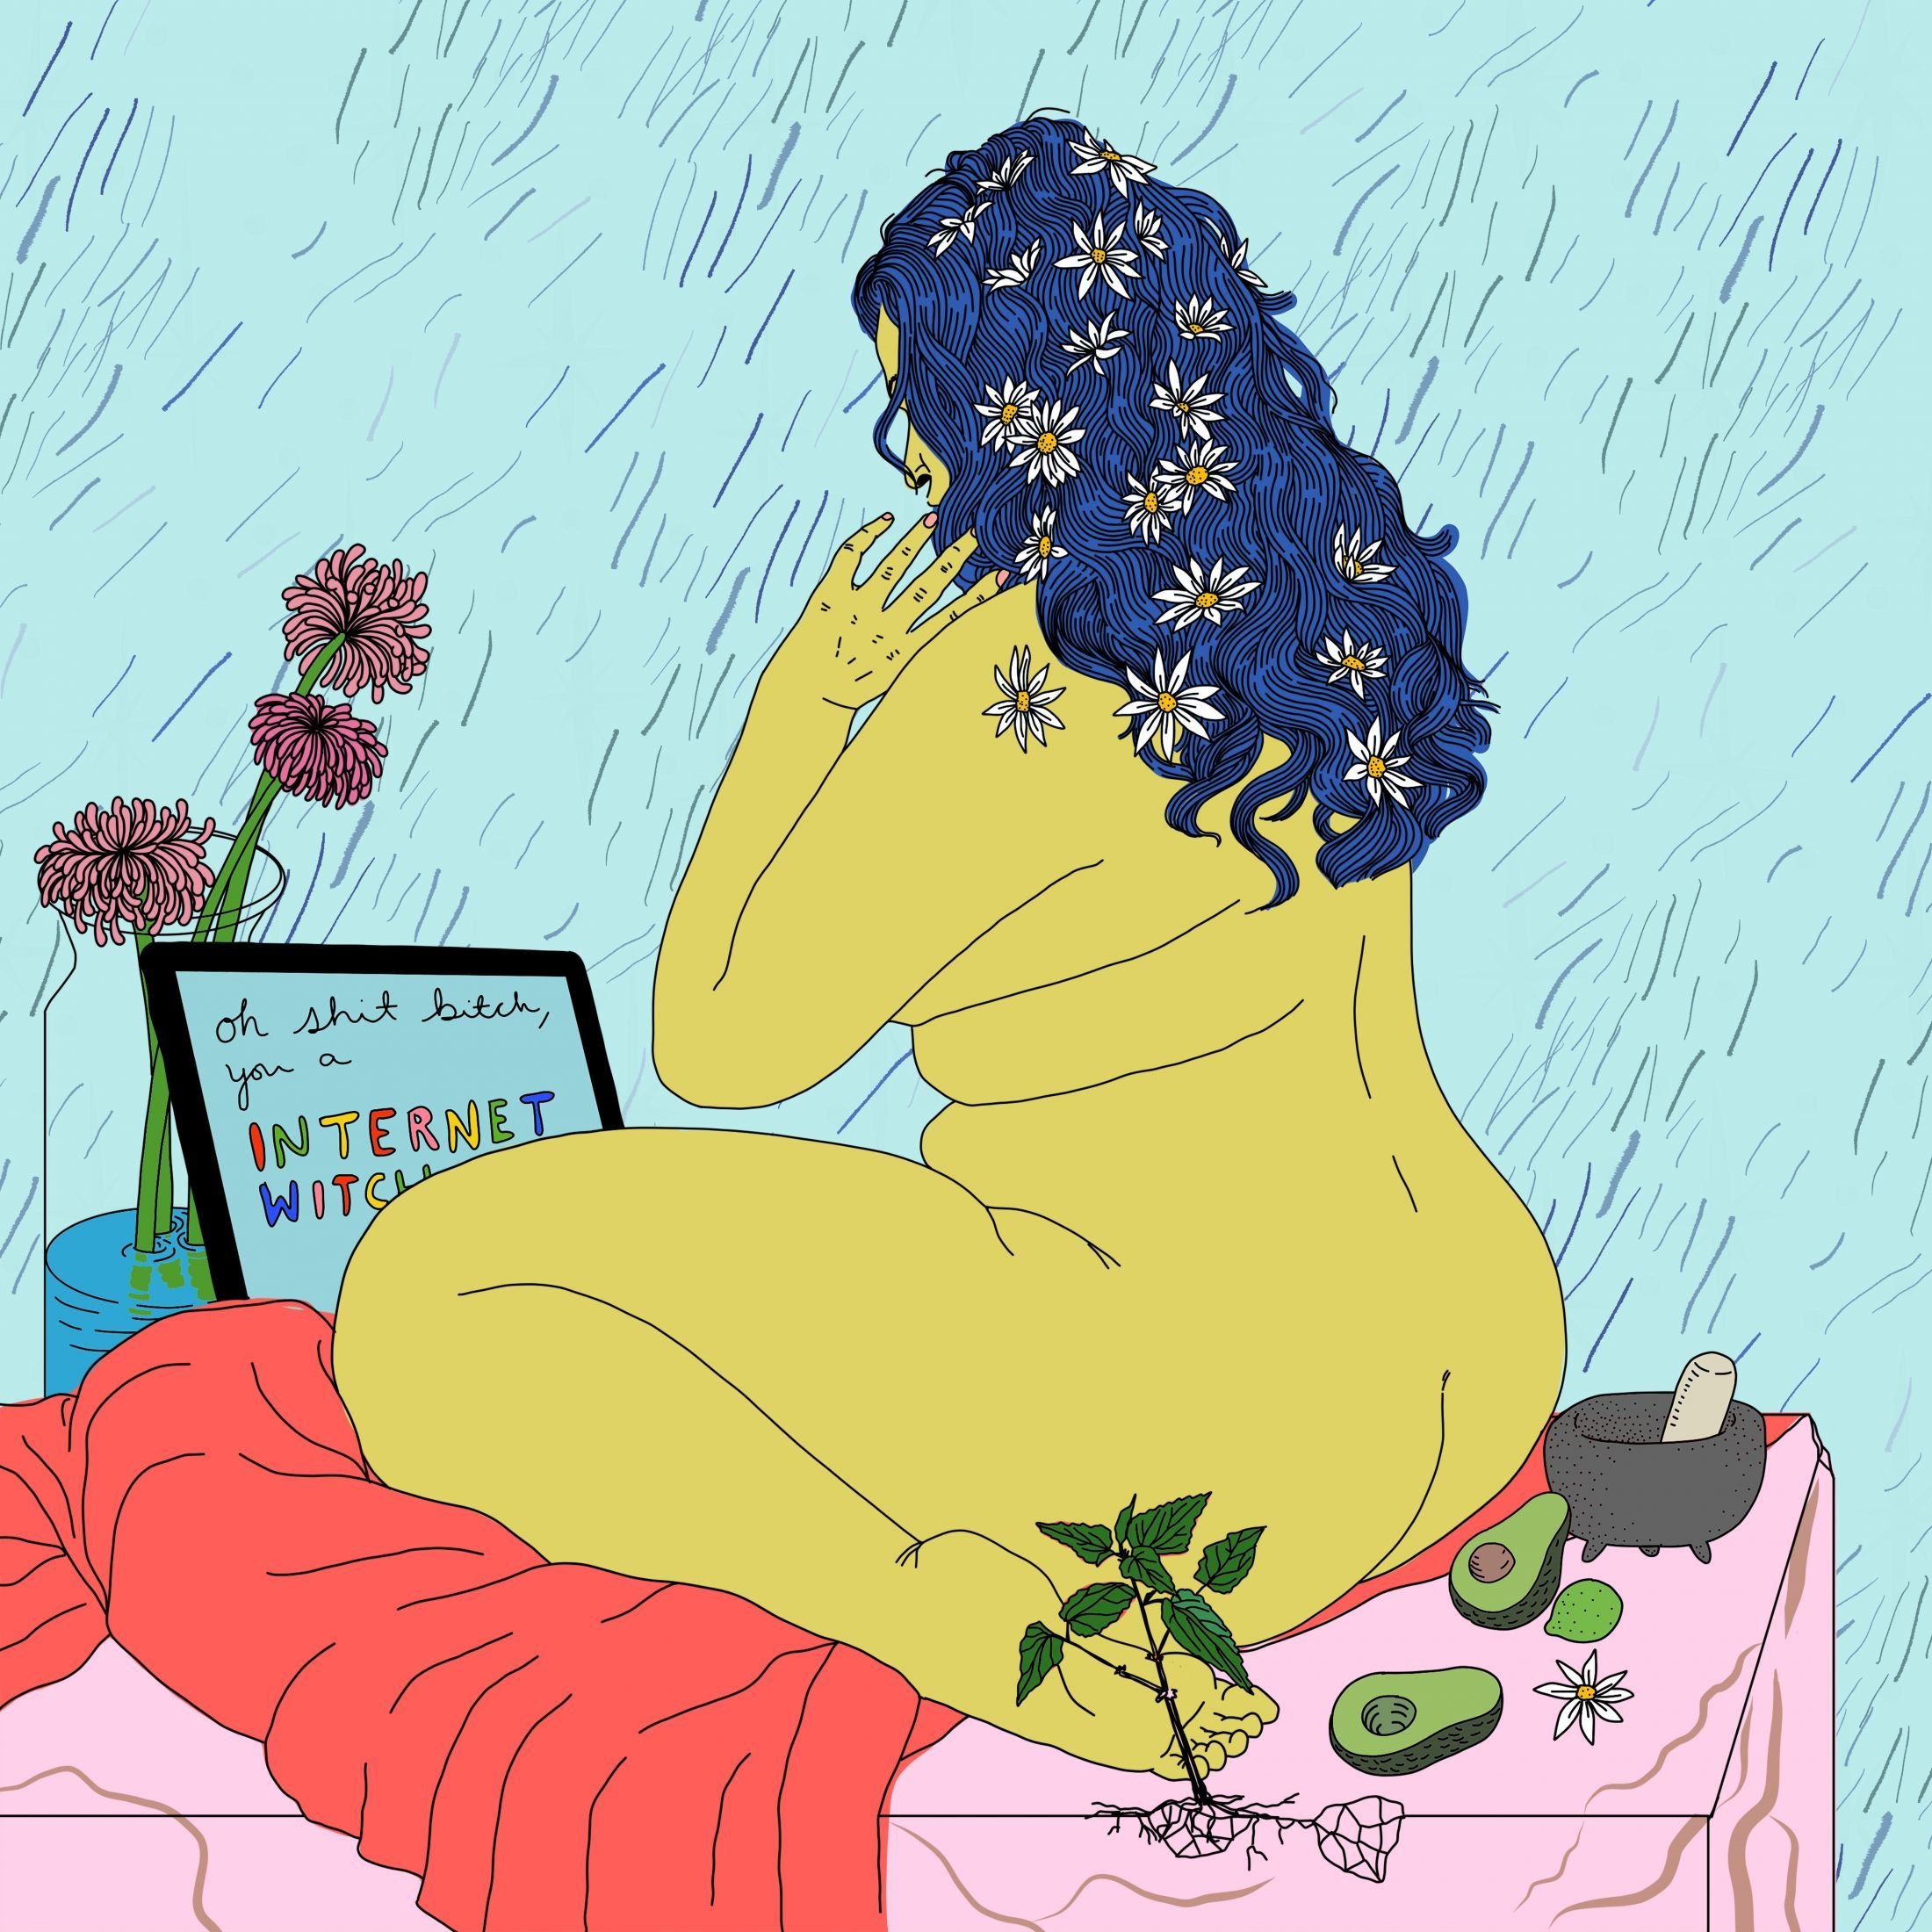 Nesting theresa baxter illustrates the selfcare rituals of the